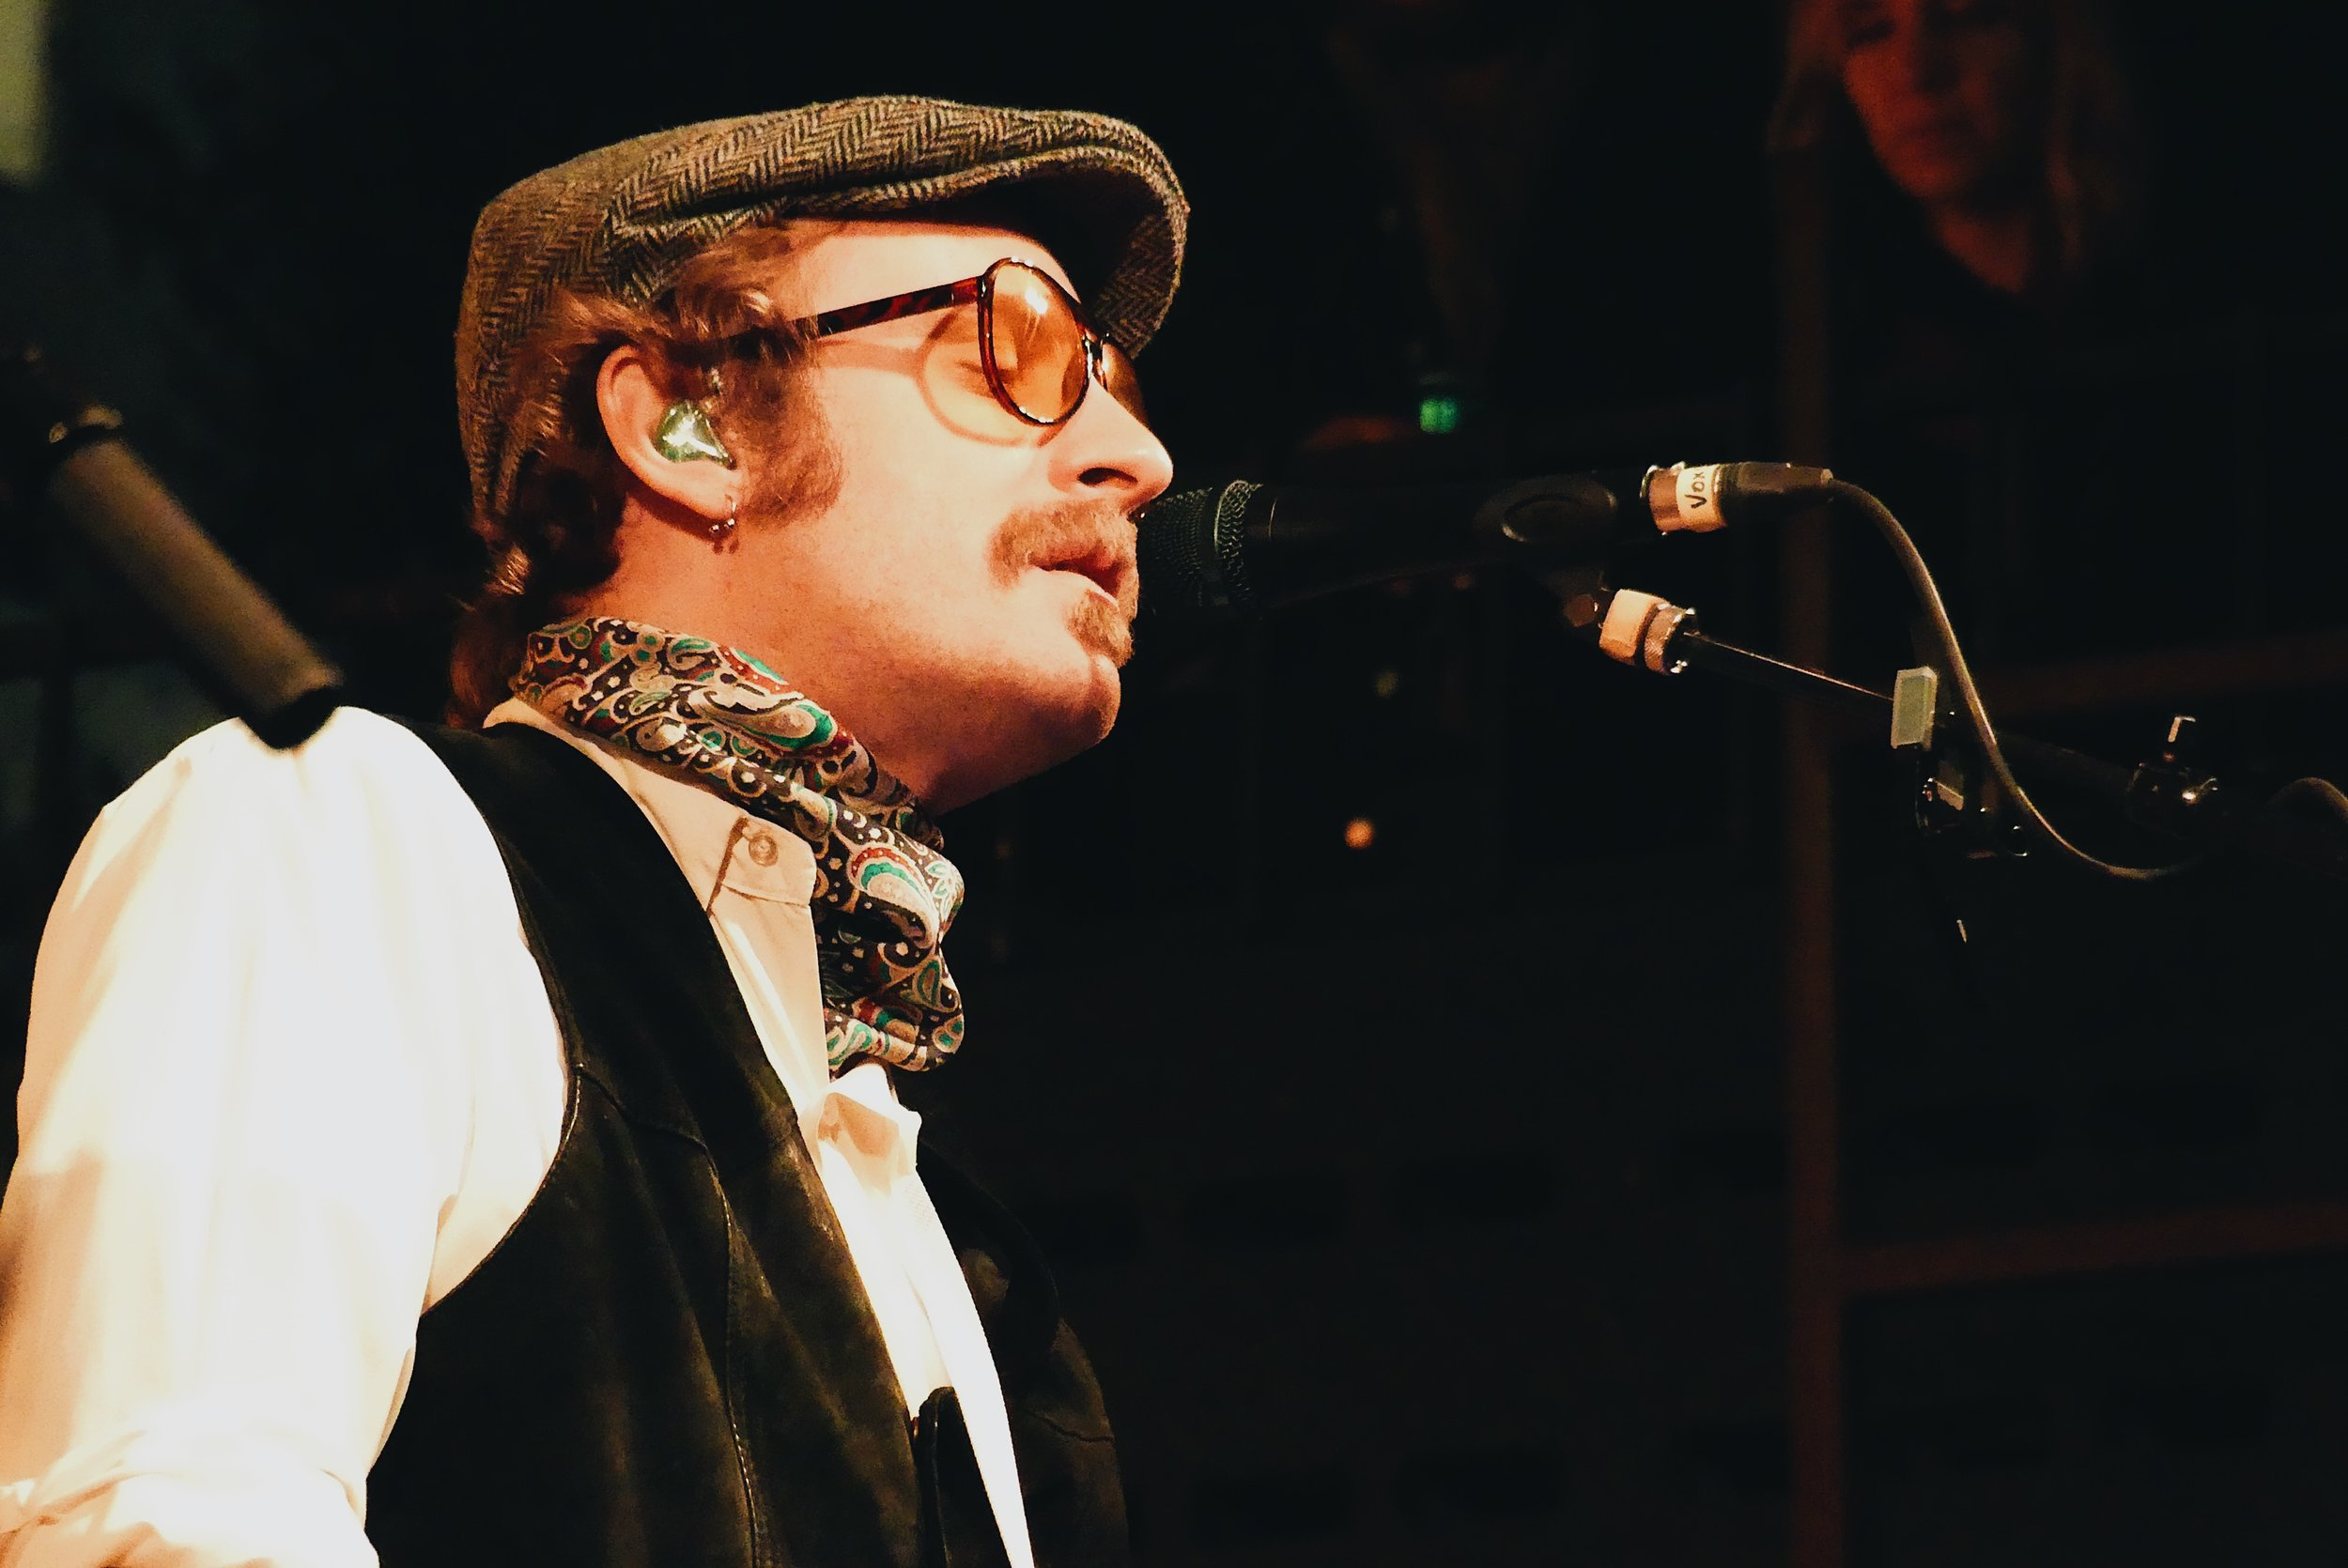 John J. McCauley of Deer Tick